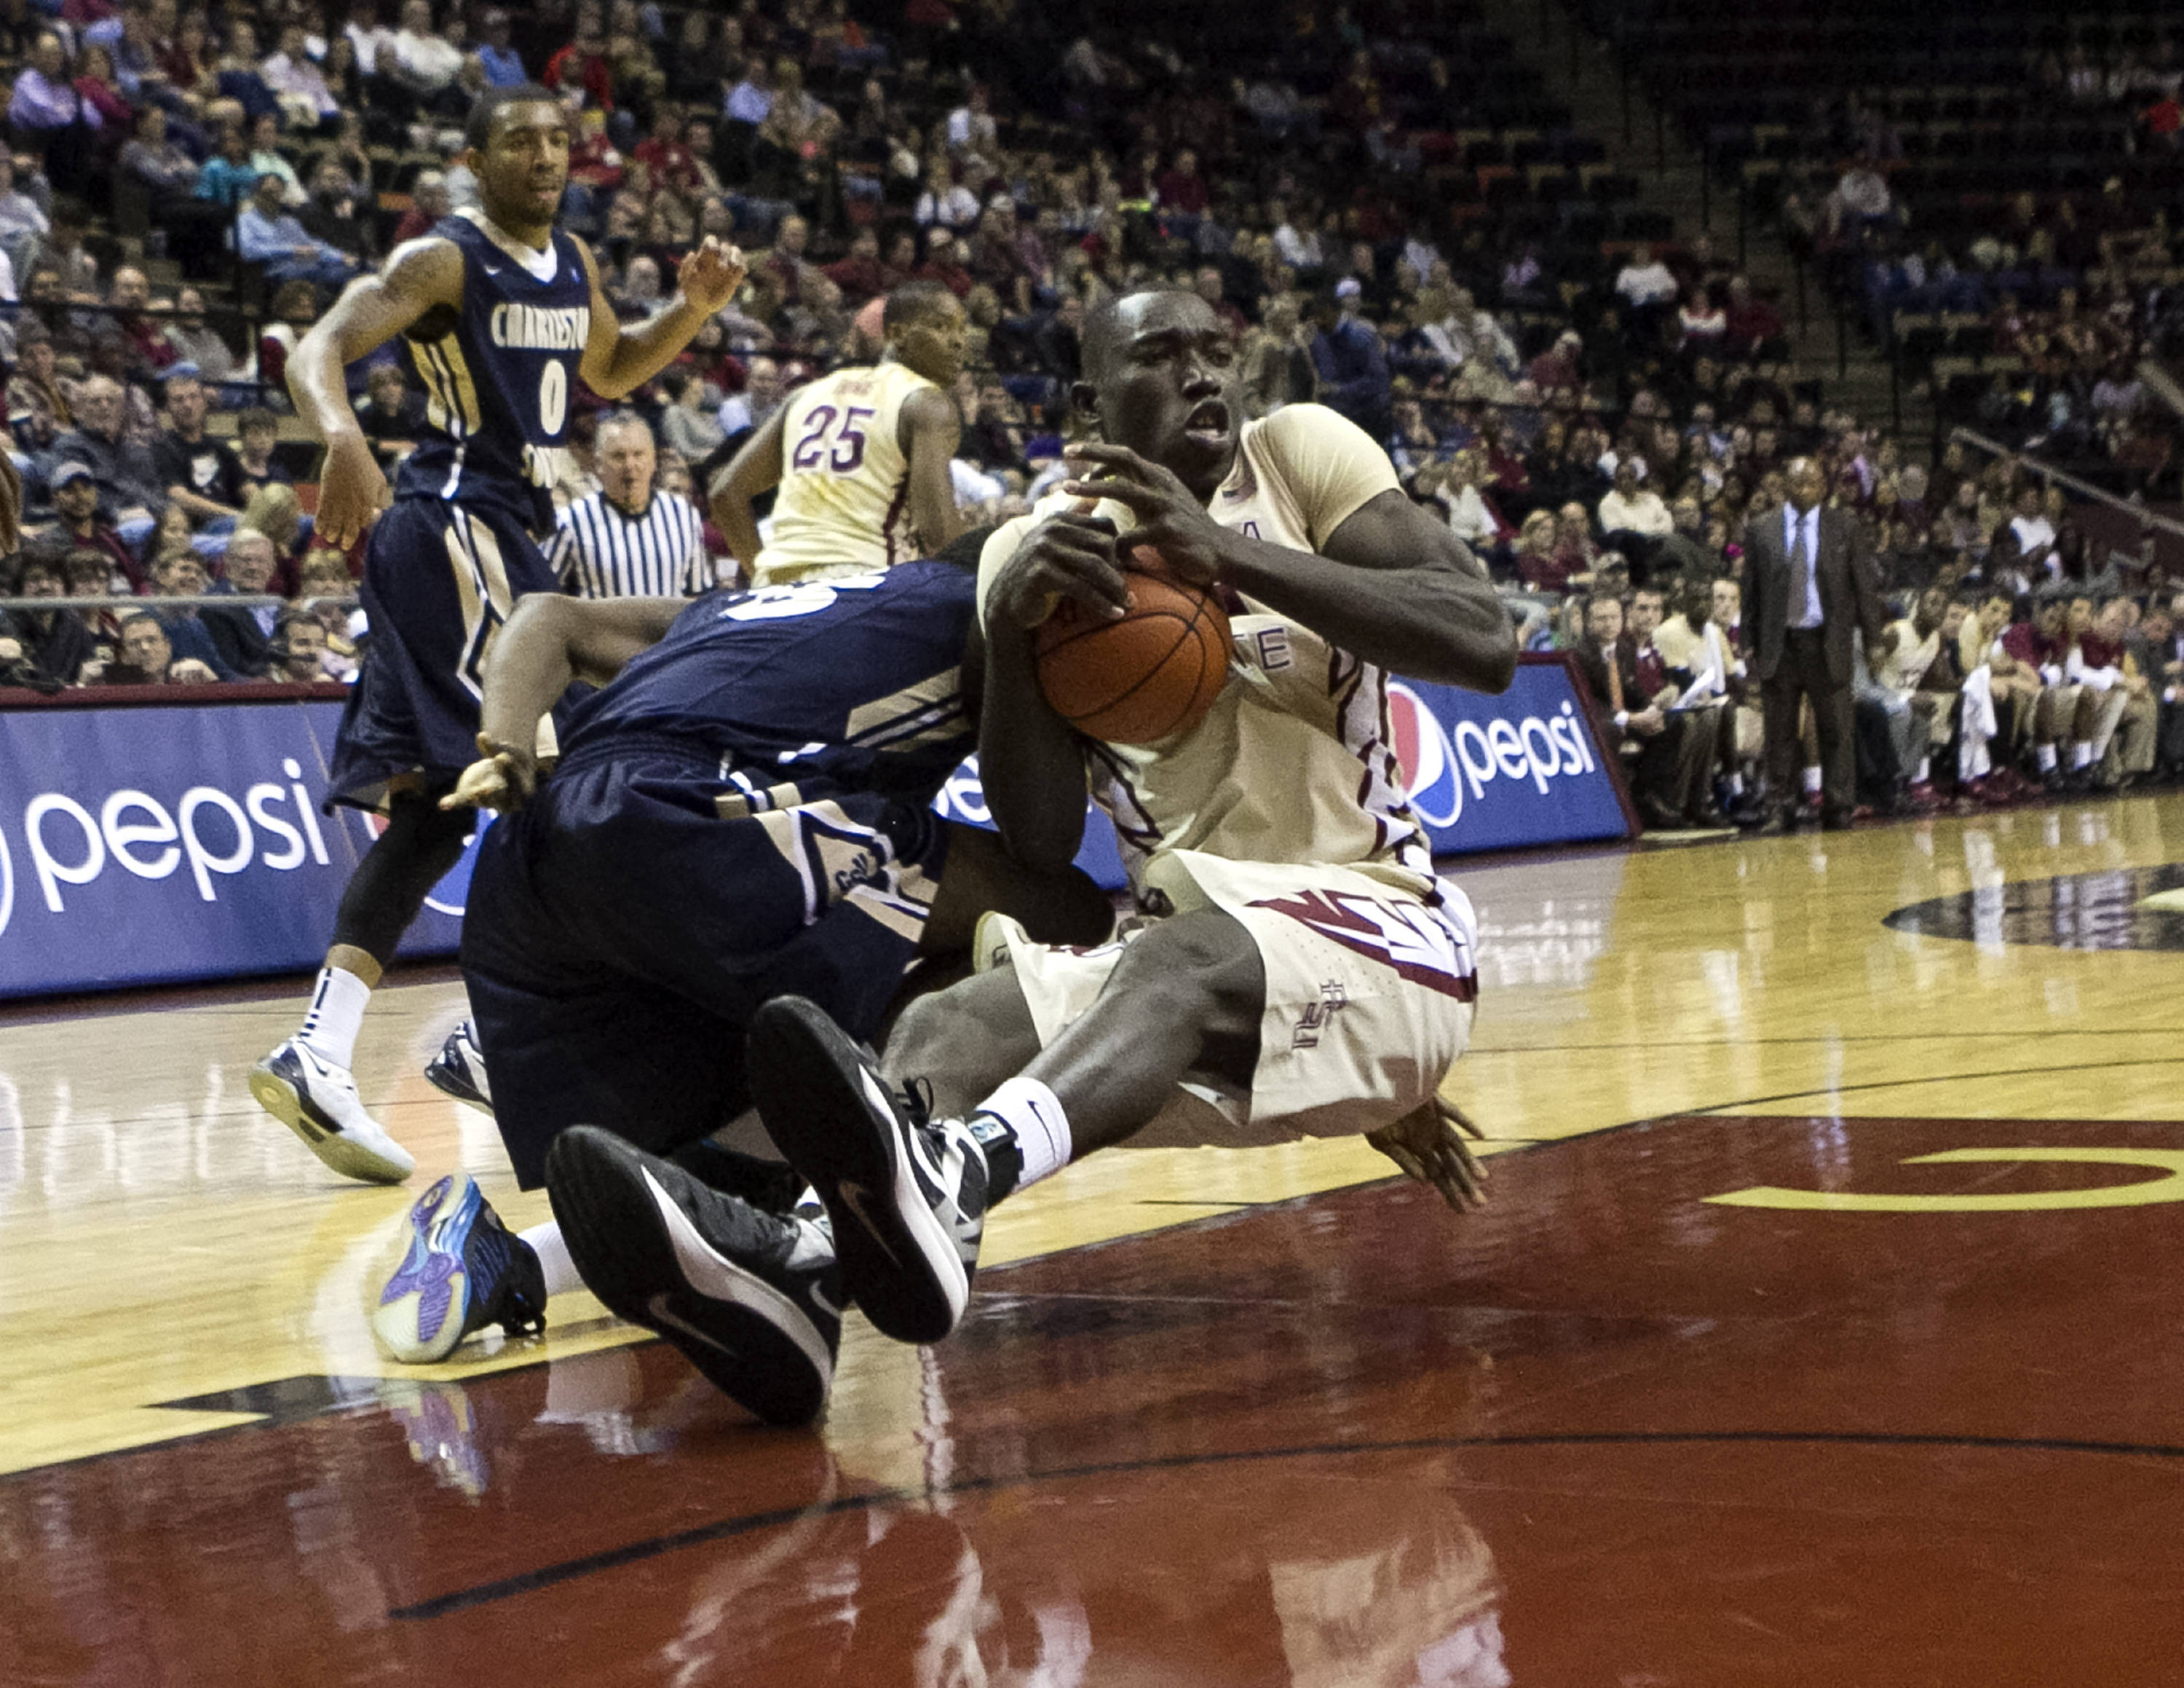 Michael Ojo (50) on the floor fighting for a loose ball, FSU vs Charleston Southern, 12-30-13,  (Photo by Steve Musco)